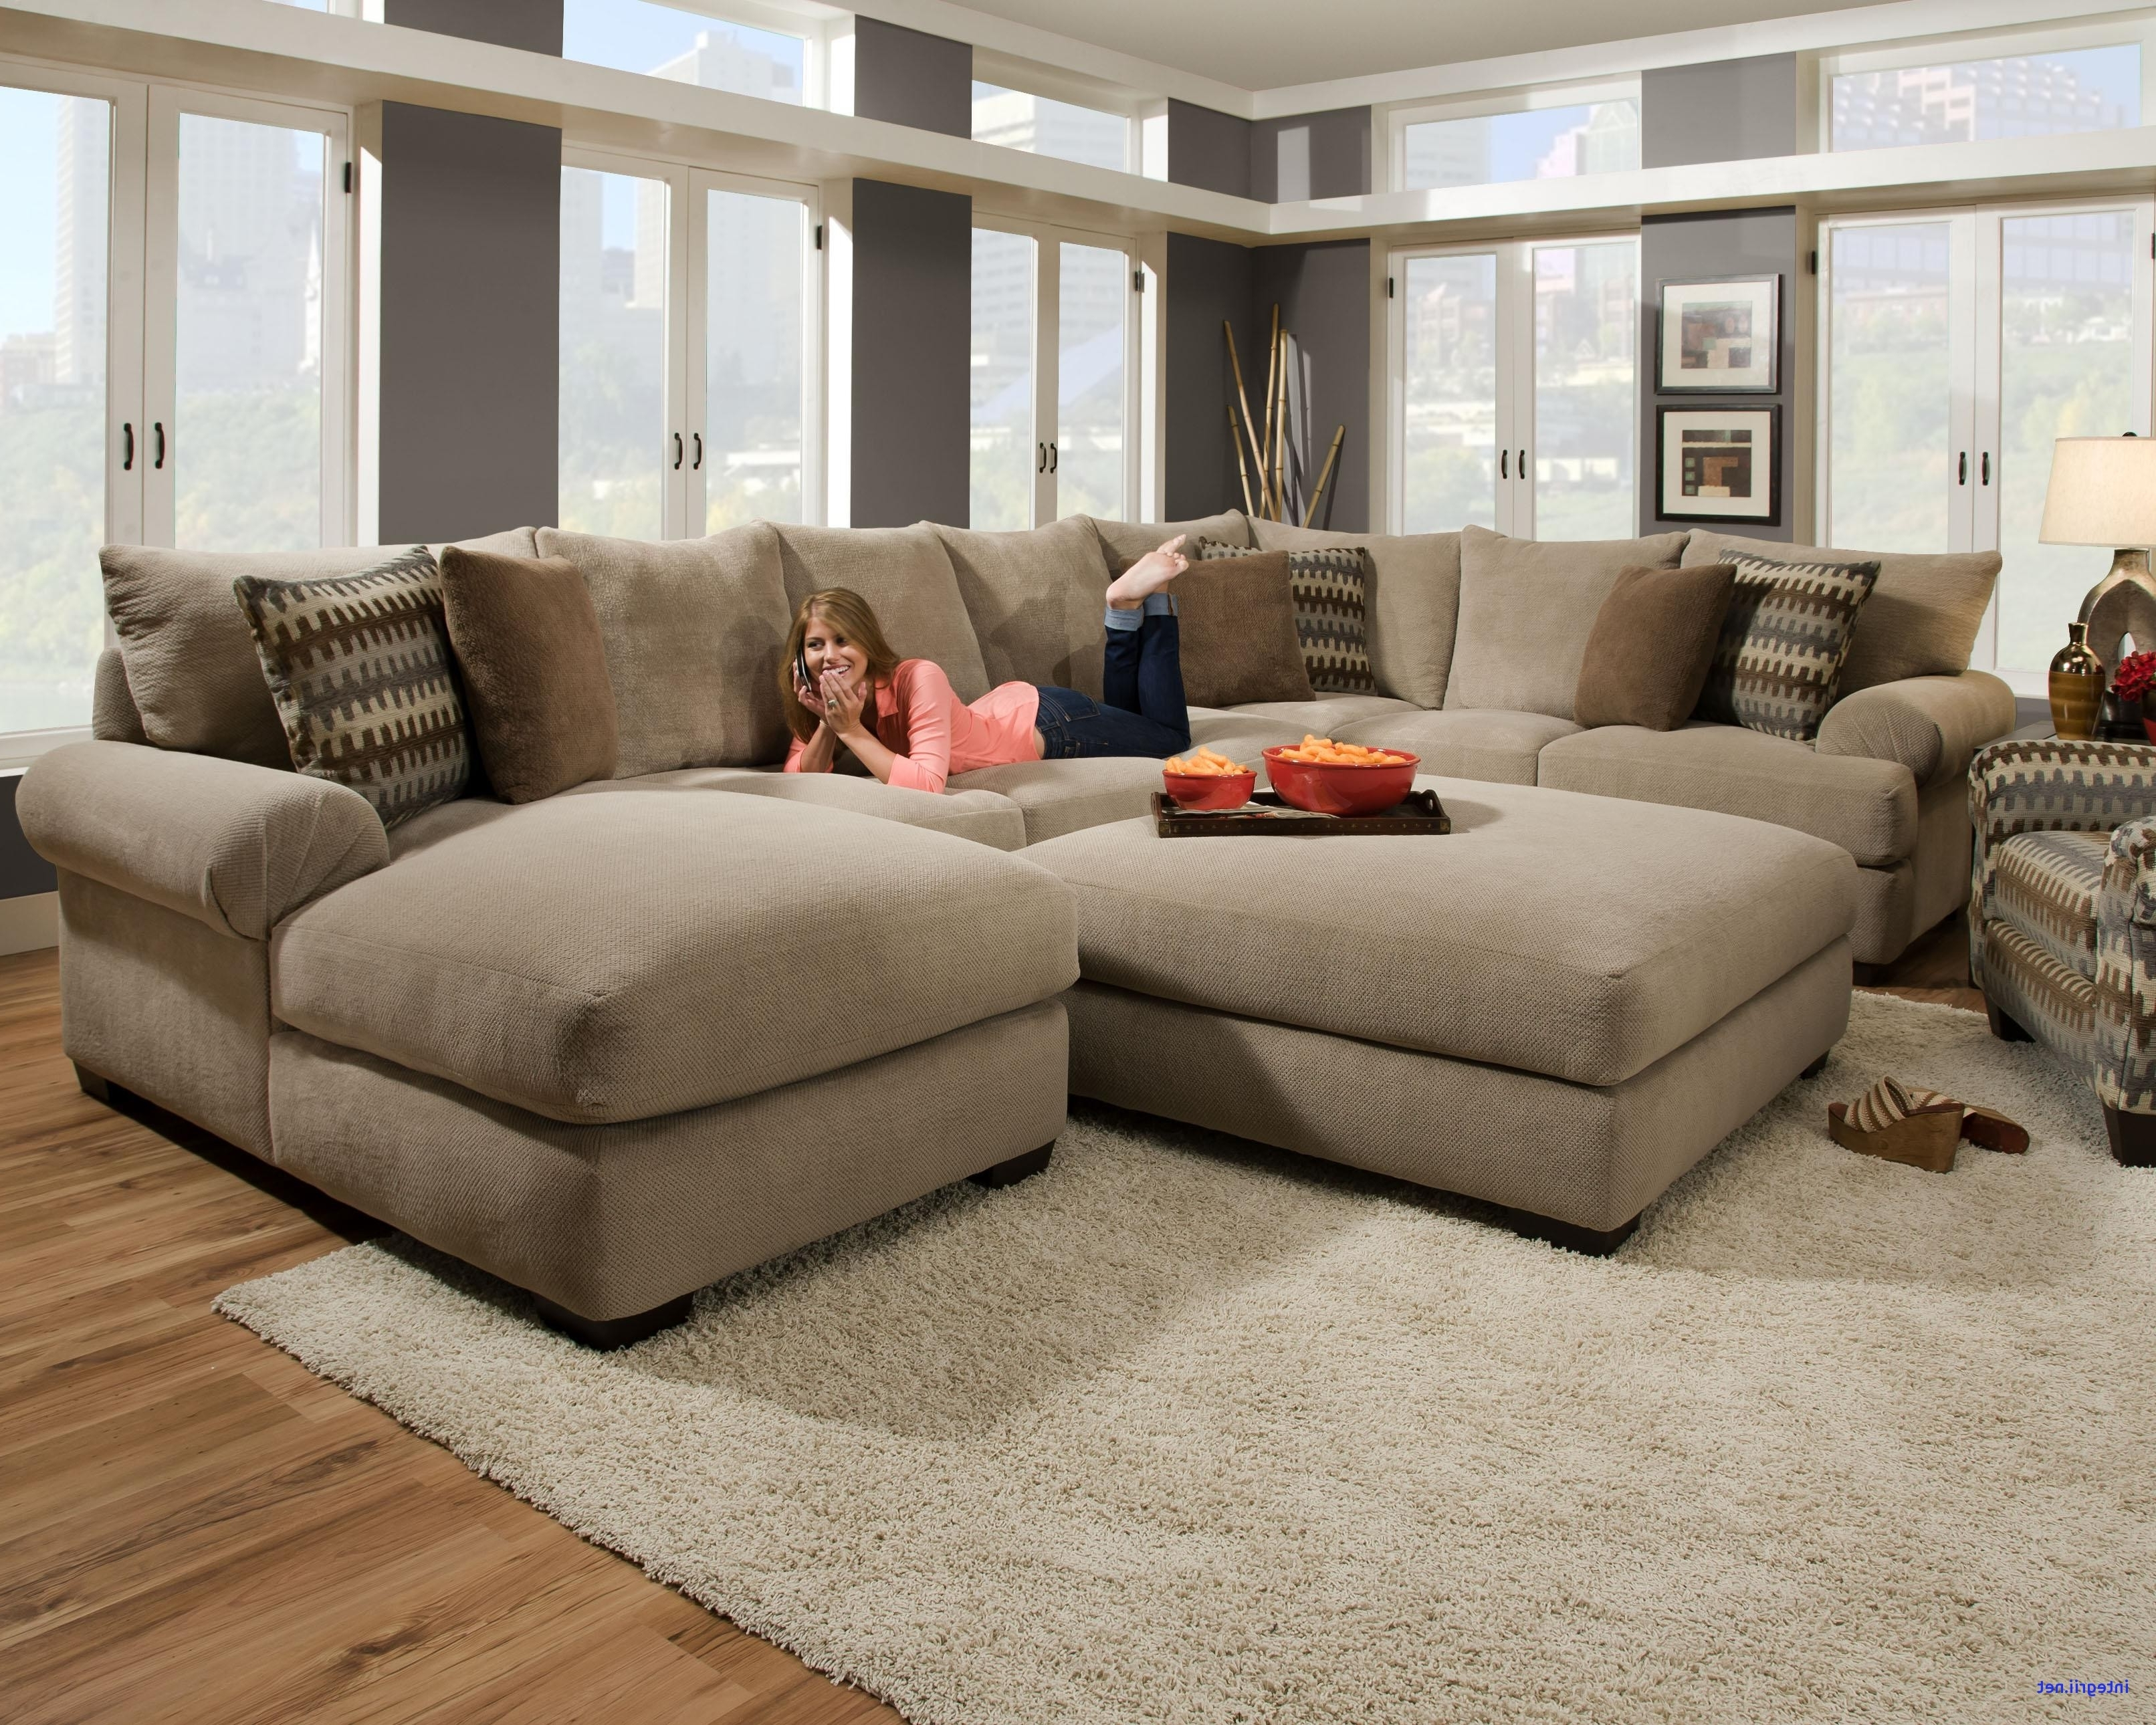 Royal Furniture Sectional Sofas In 2017 Sectional Furniture Beautiful Affordable Furniture 3650 Sofa (View 11 of 15)